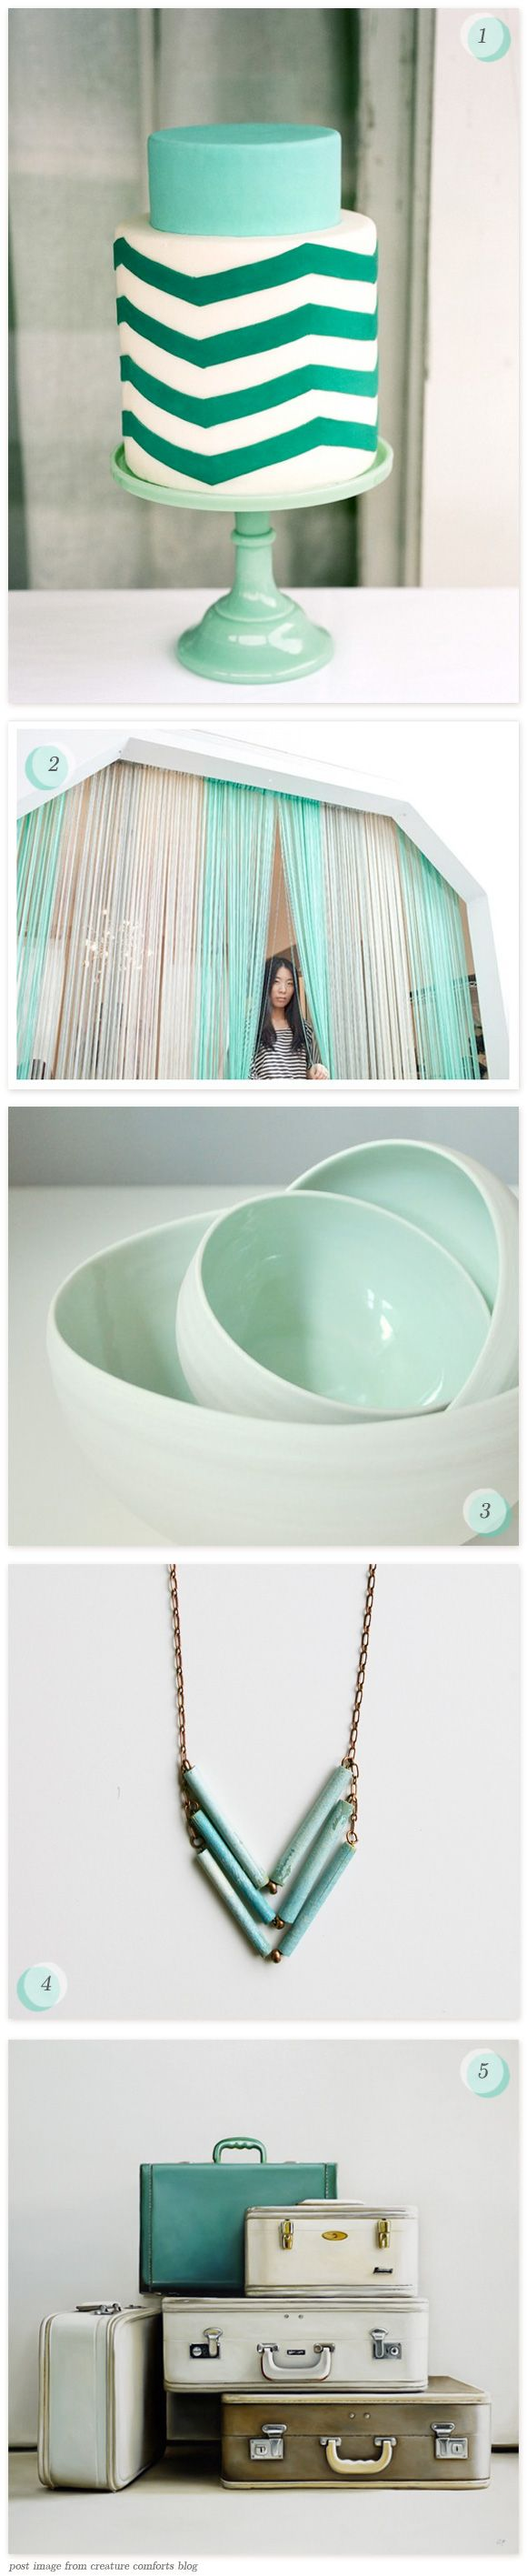 teal, future trend for turquoise in a pale mint and dark teal. #colortrend, #decorating